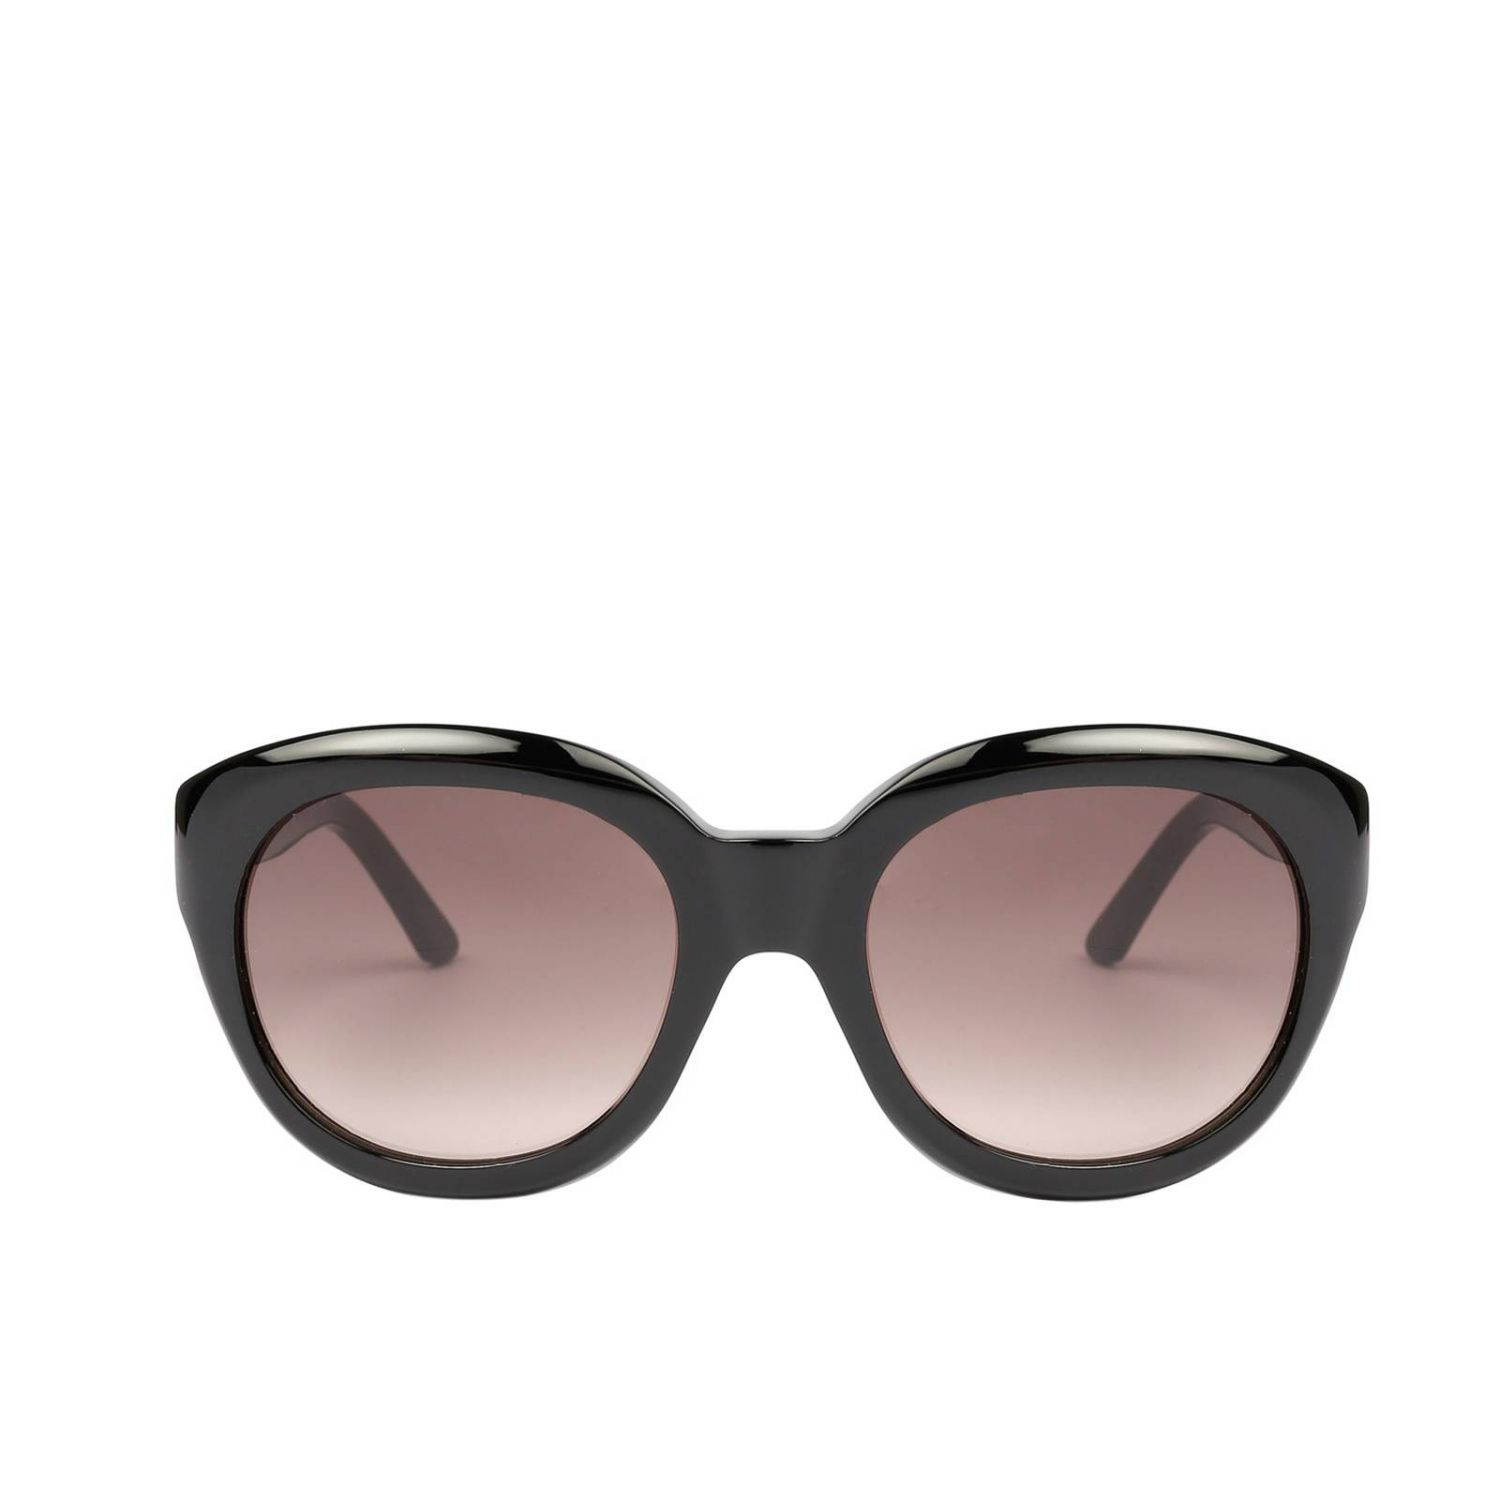 Glasses women CÉline black 2